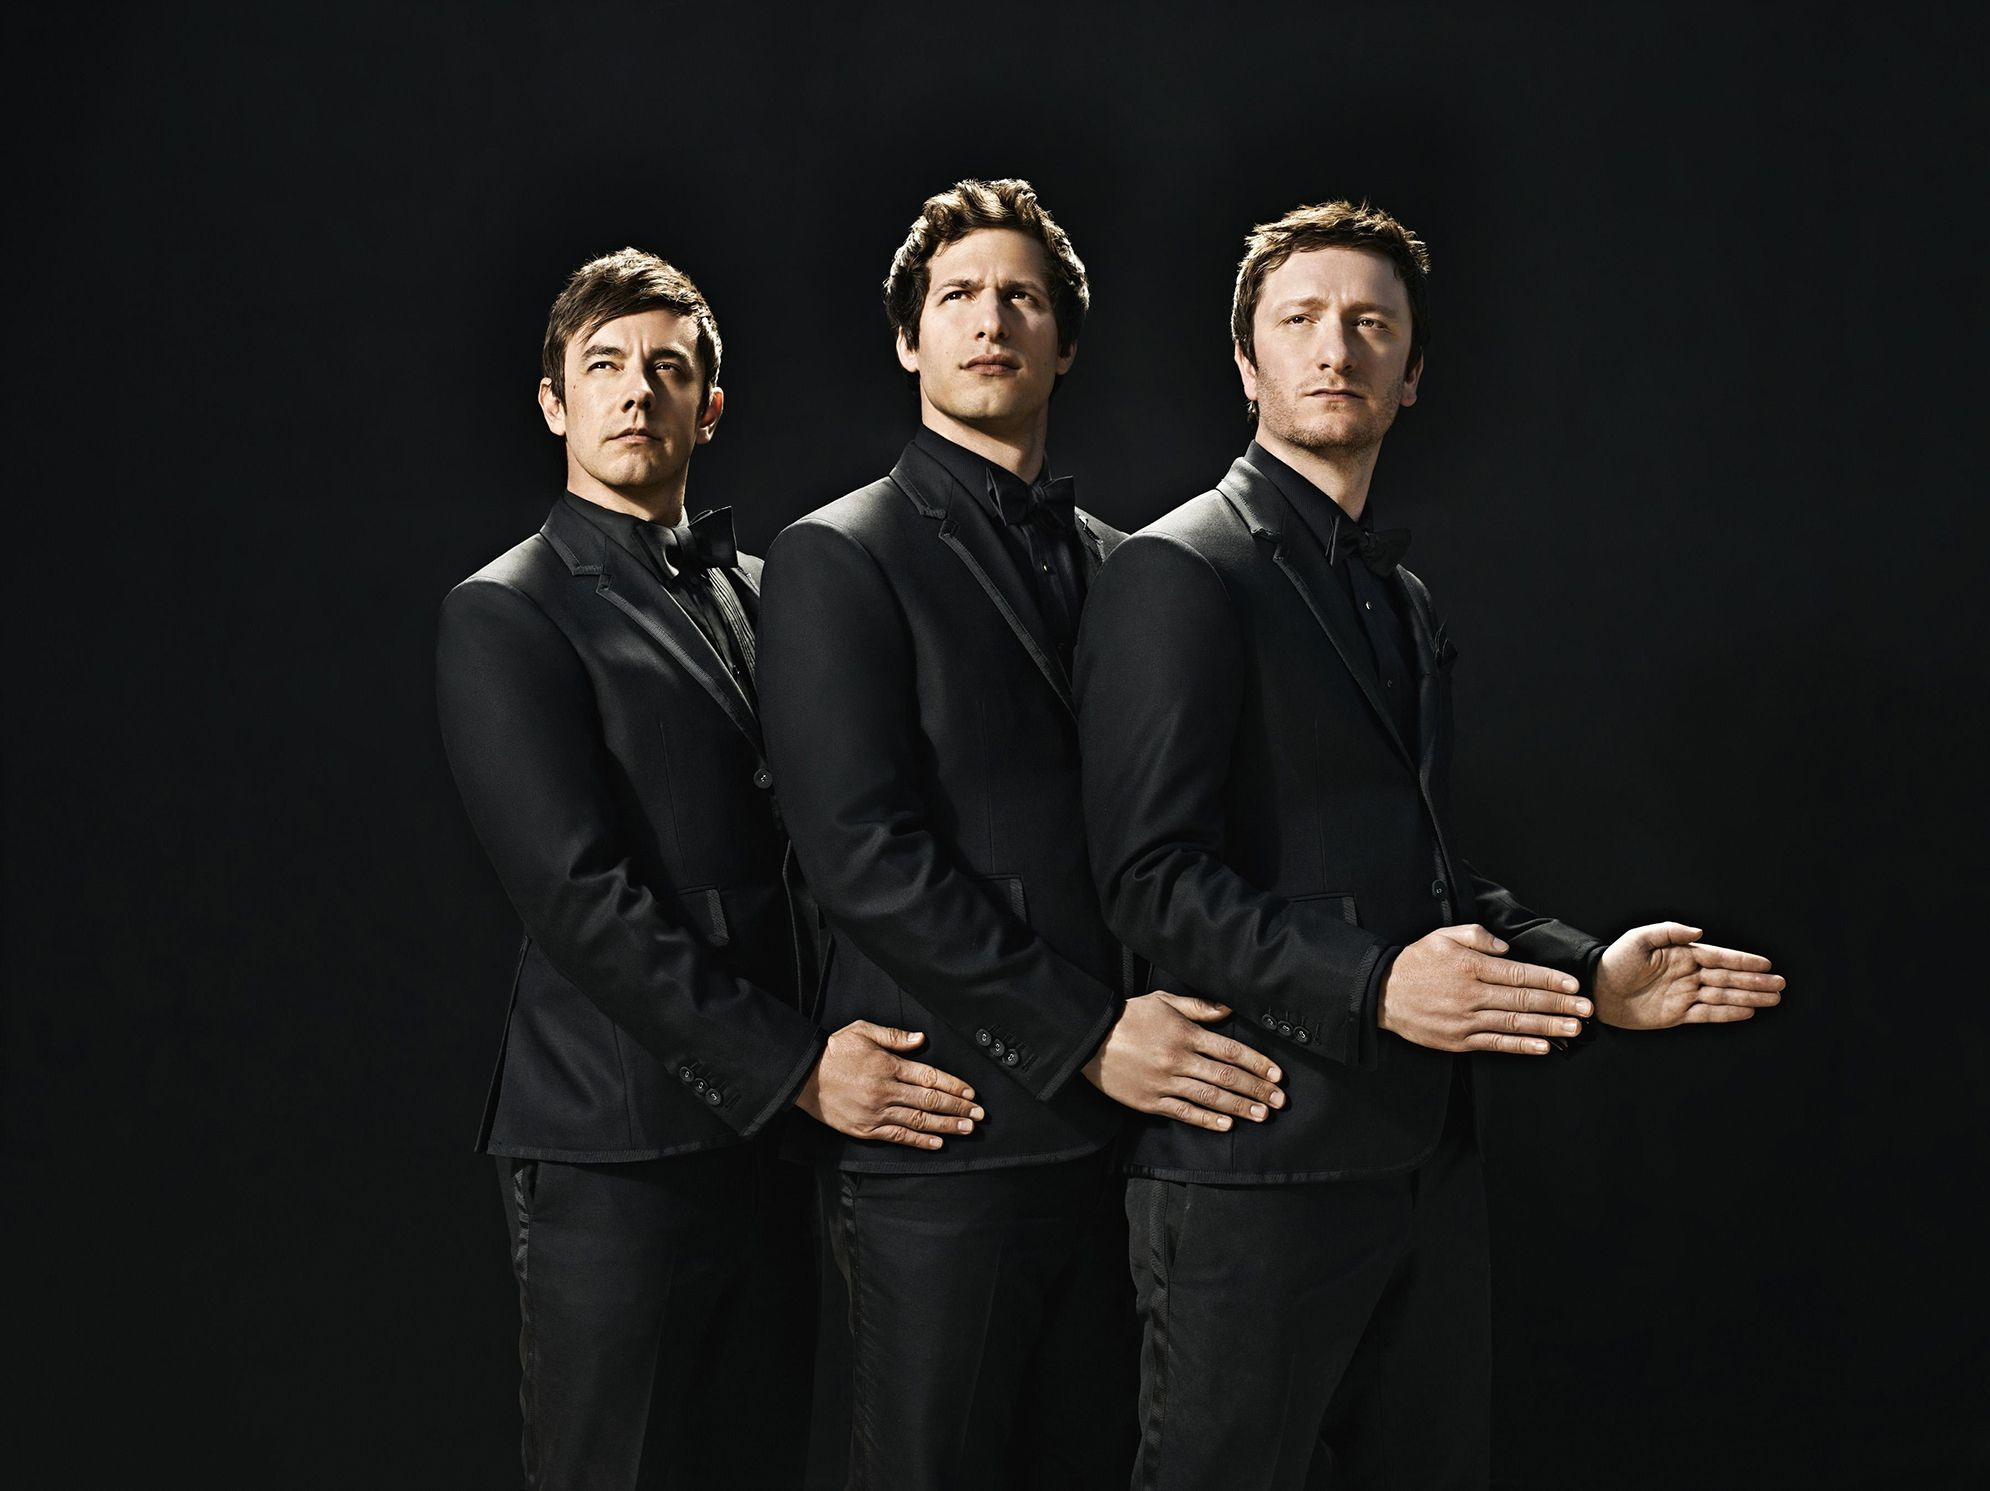 Andy Samberg On The Lonely Island Movie Conner4Real